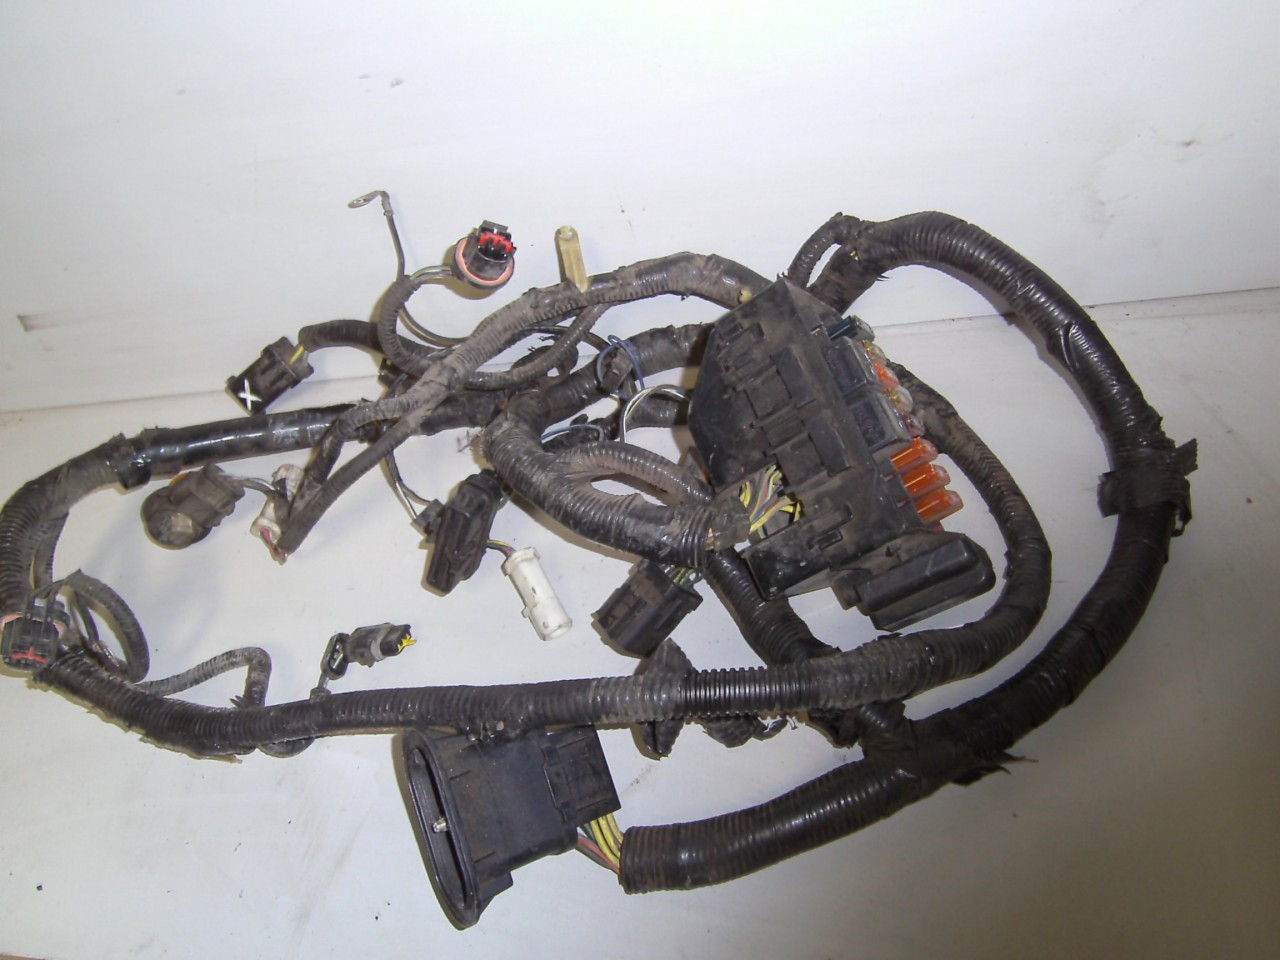 hight resolution of 1996 1998 ford mustang 3 8 engine bay fuse headlight wire harness 4 6 price 49 99 image 1